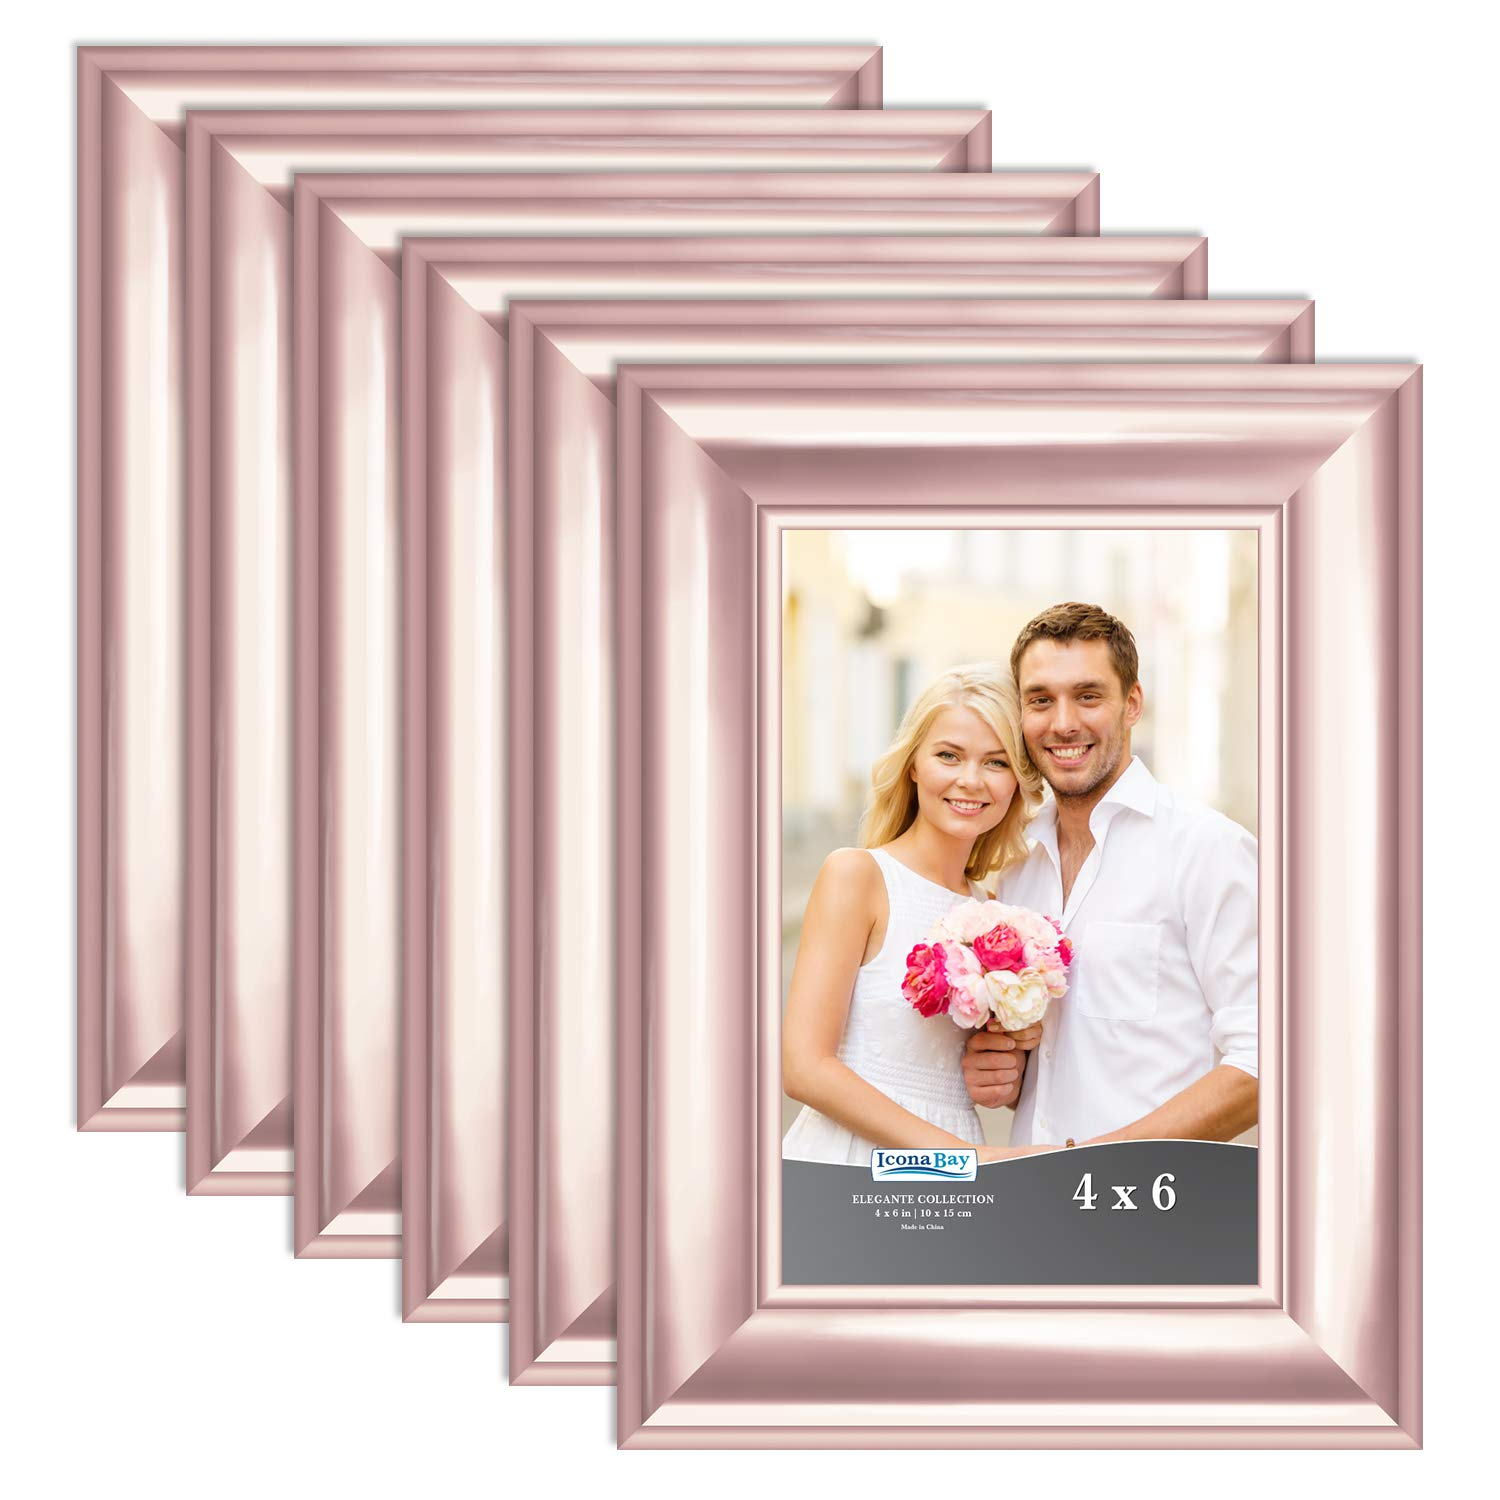 Icona Bay 4x6 Picture Frame (6 Pack, Rose Gold), Rose Gold Photo Frame 4 x 6, Wall Mount or Table Top, Set of 6 Elegante Collection by Icona Bay